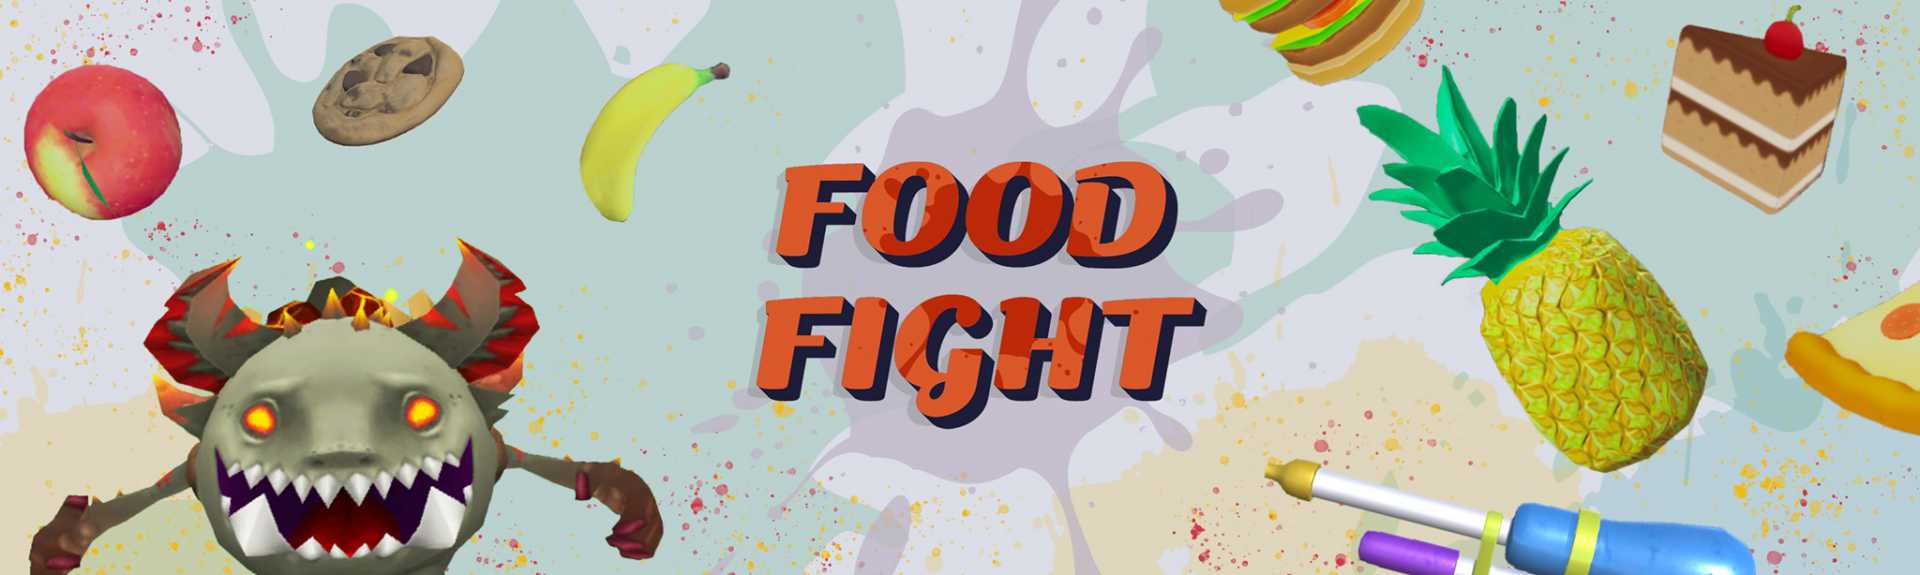 FoodFight